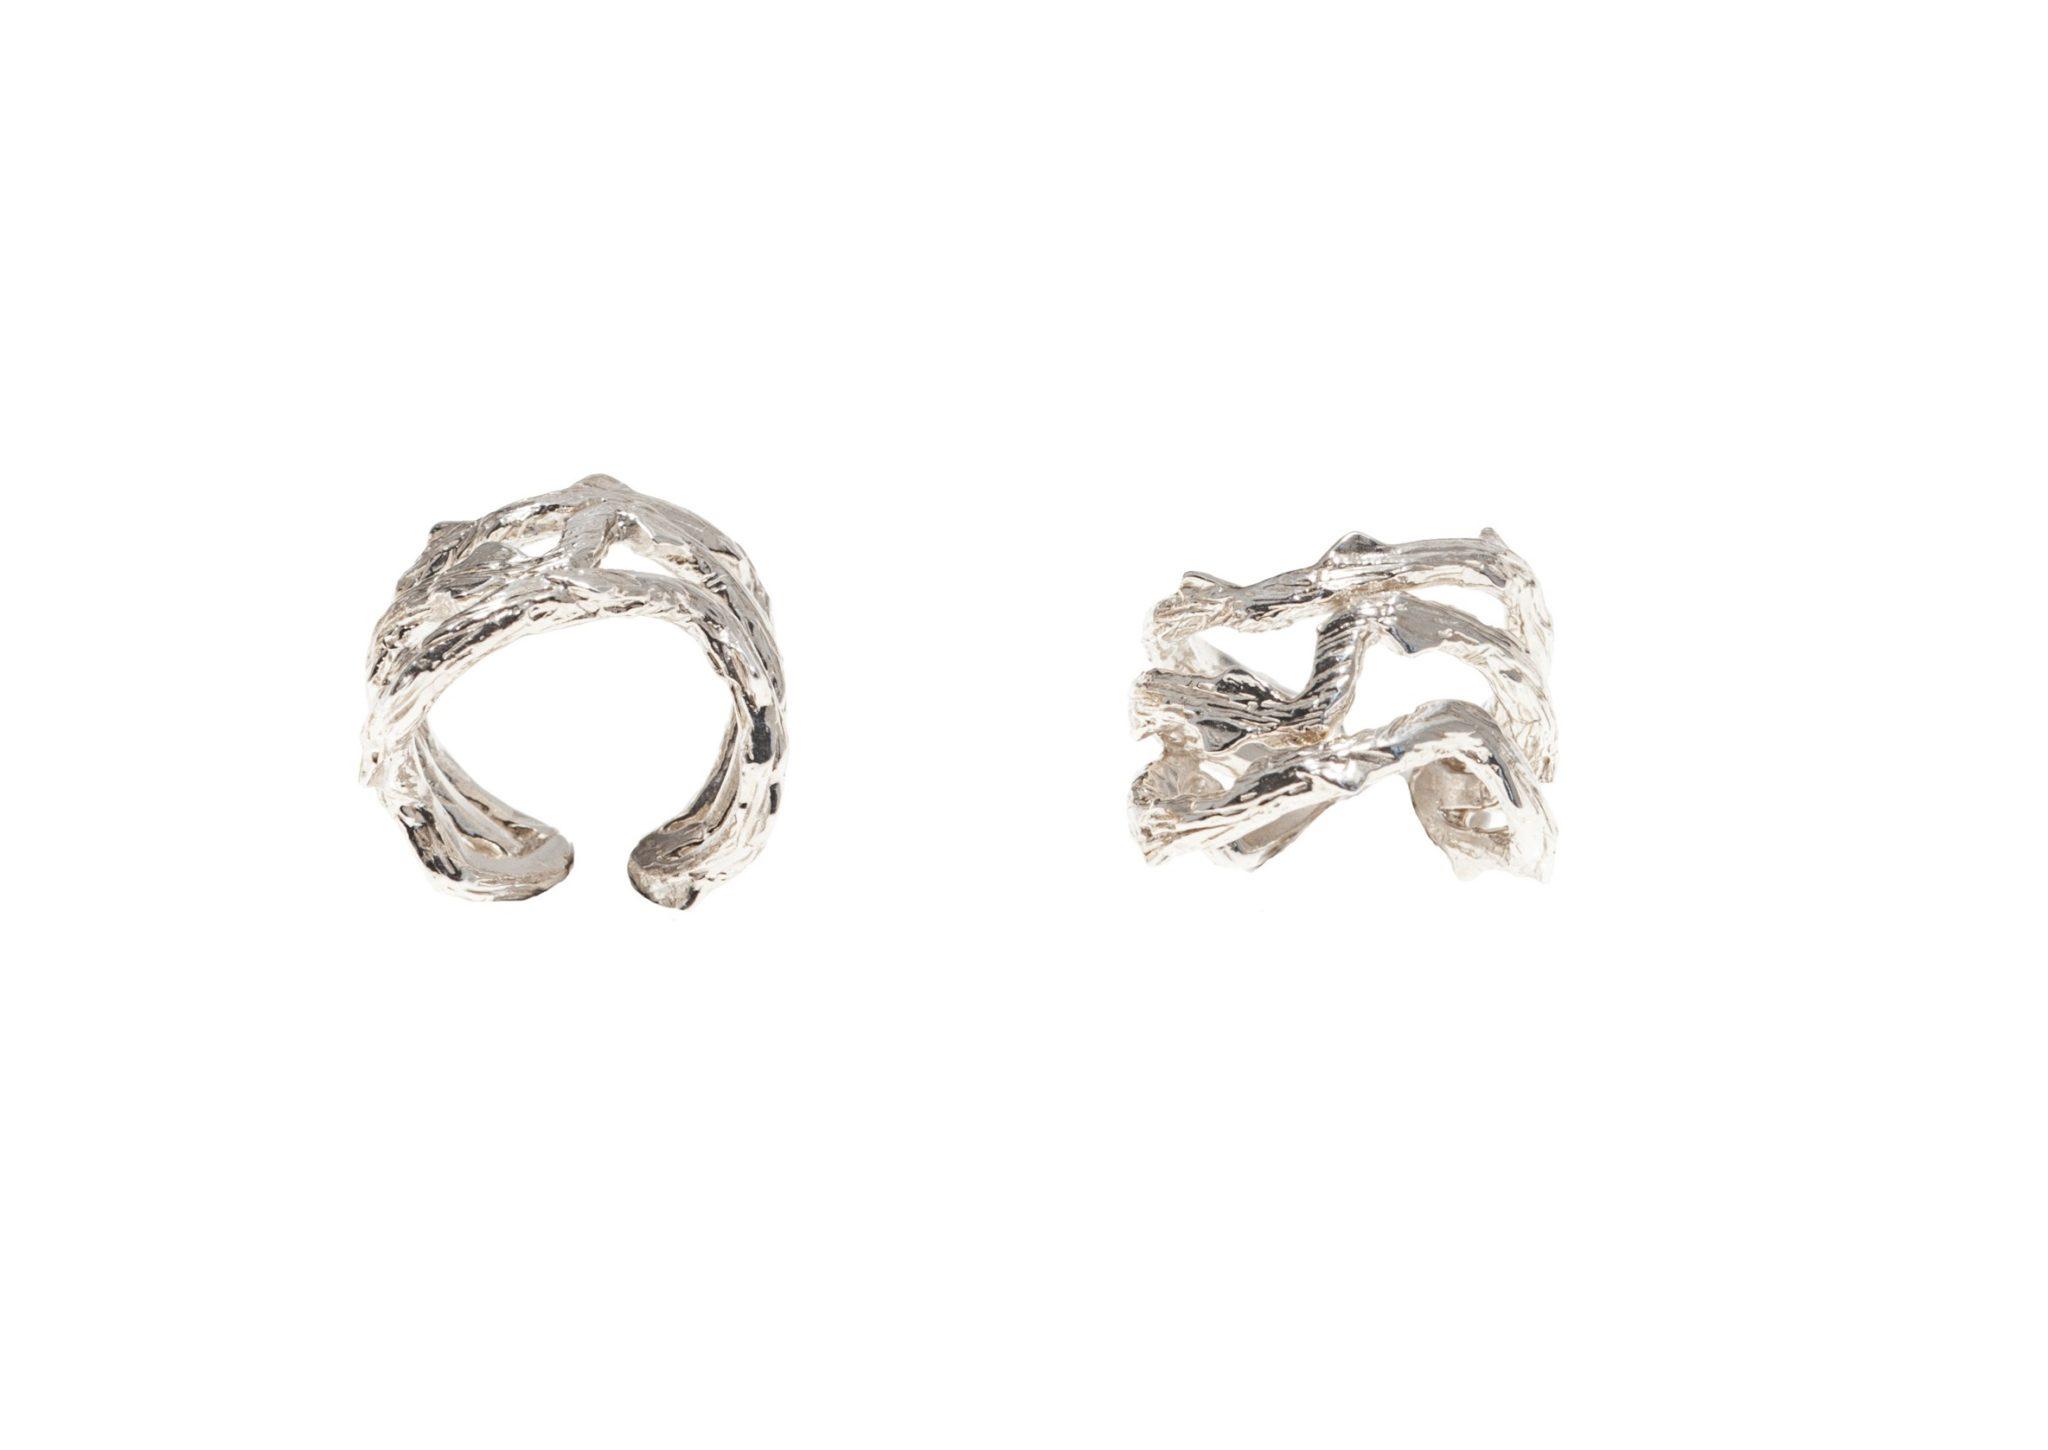 Thorny branch flat silver ring